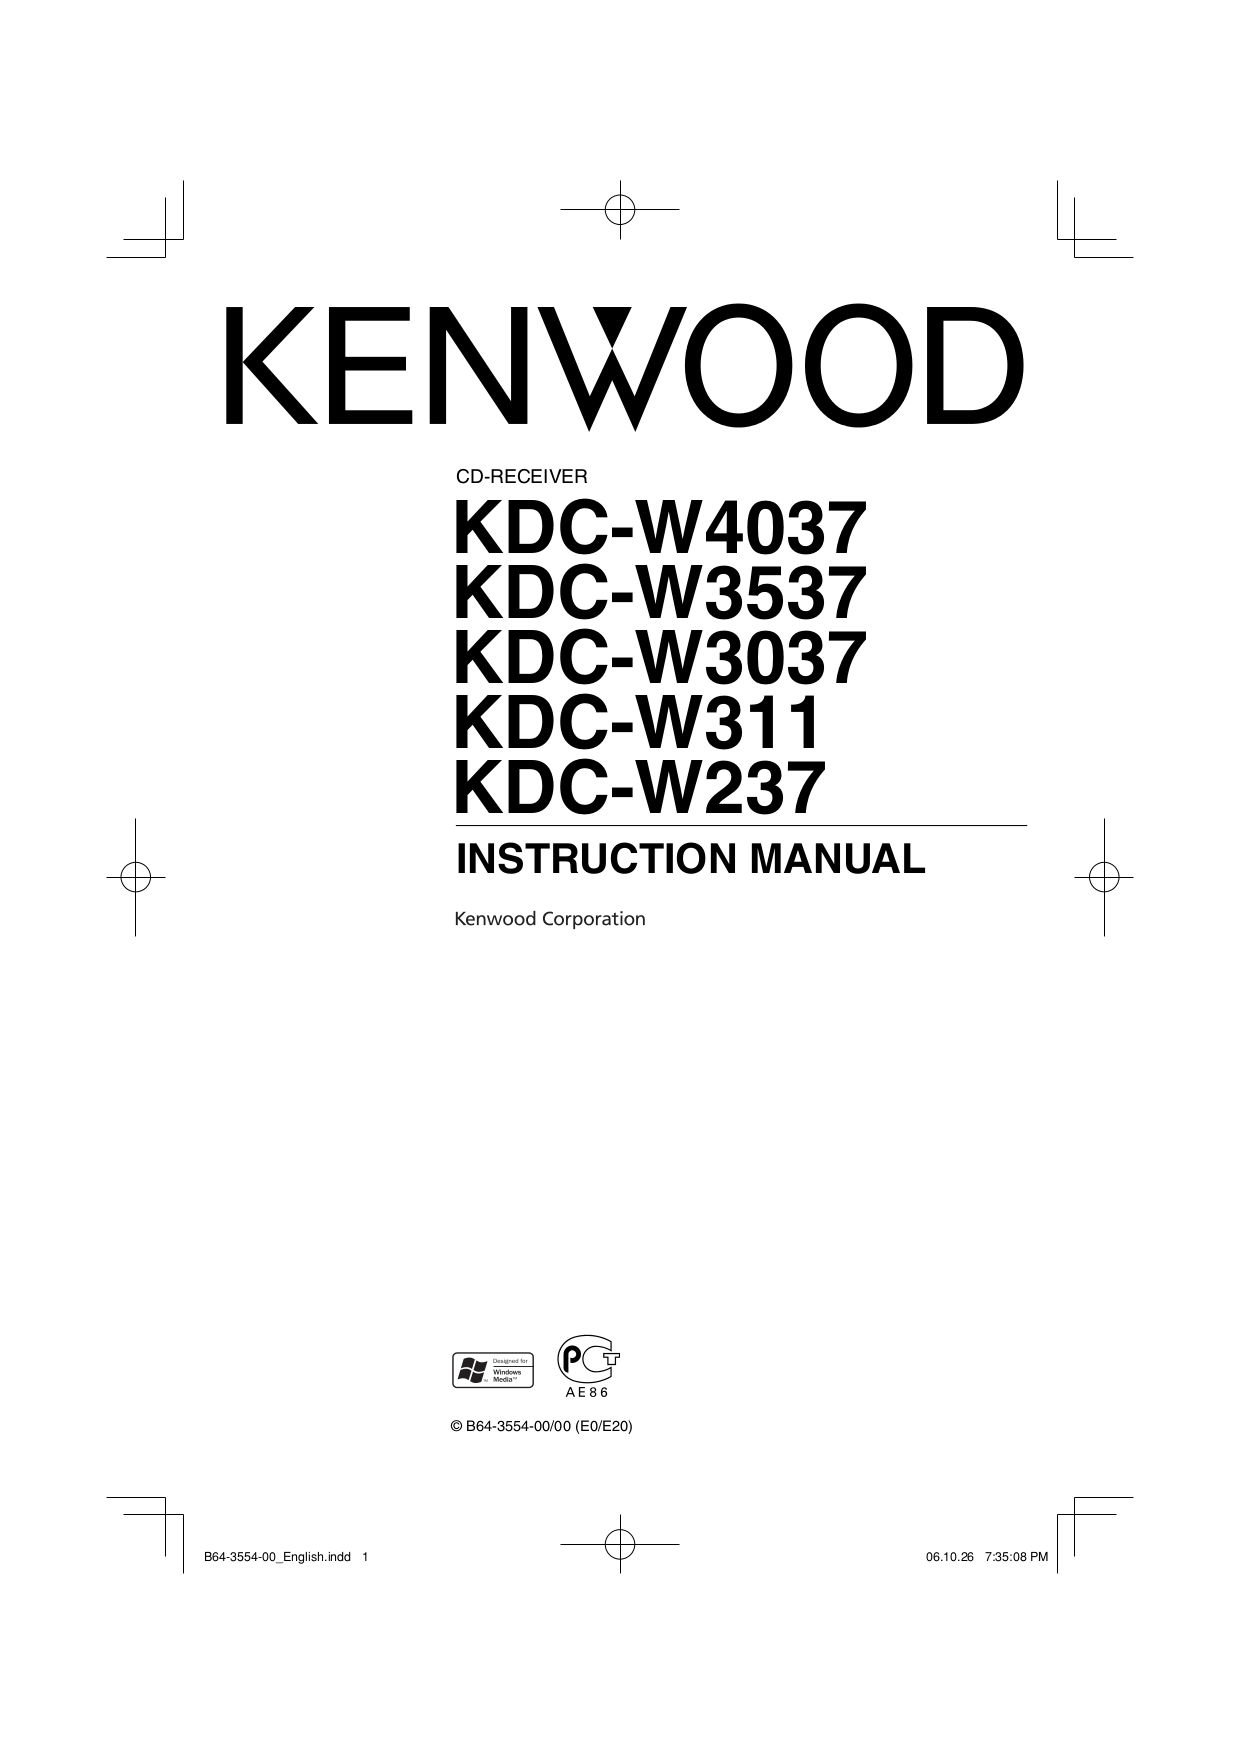 Download free pdf for Kenwood SW-200 Subwoofer manual